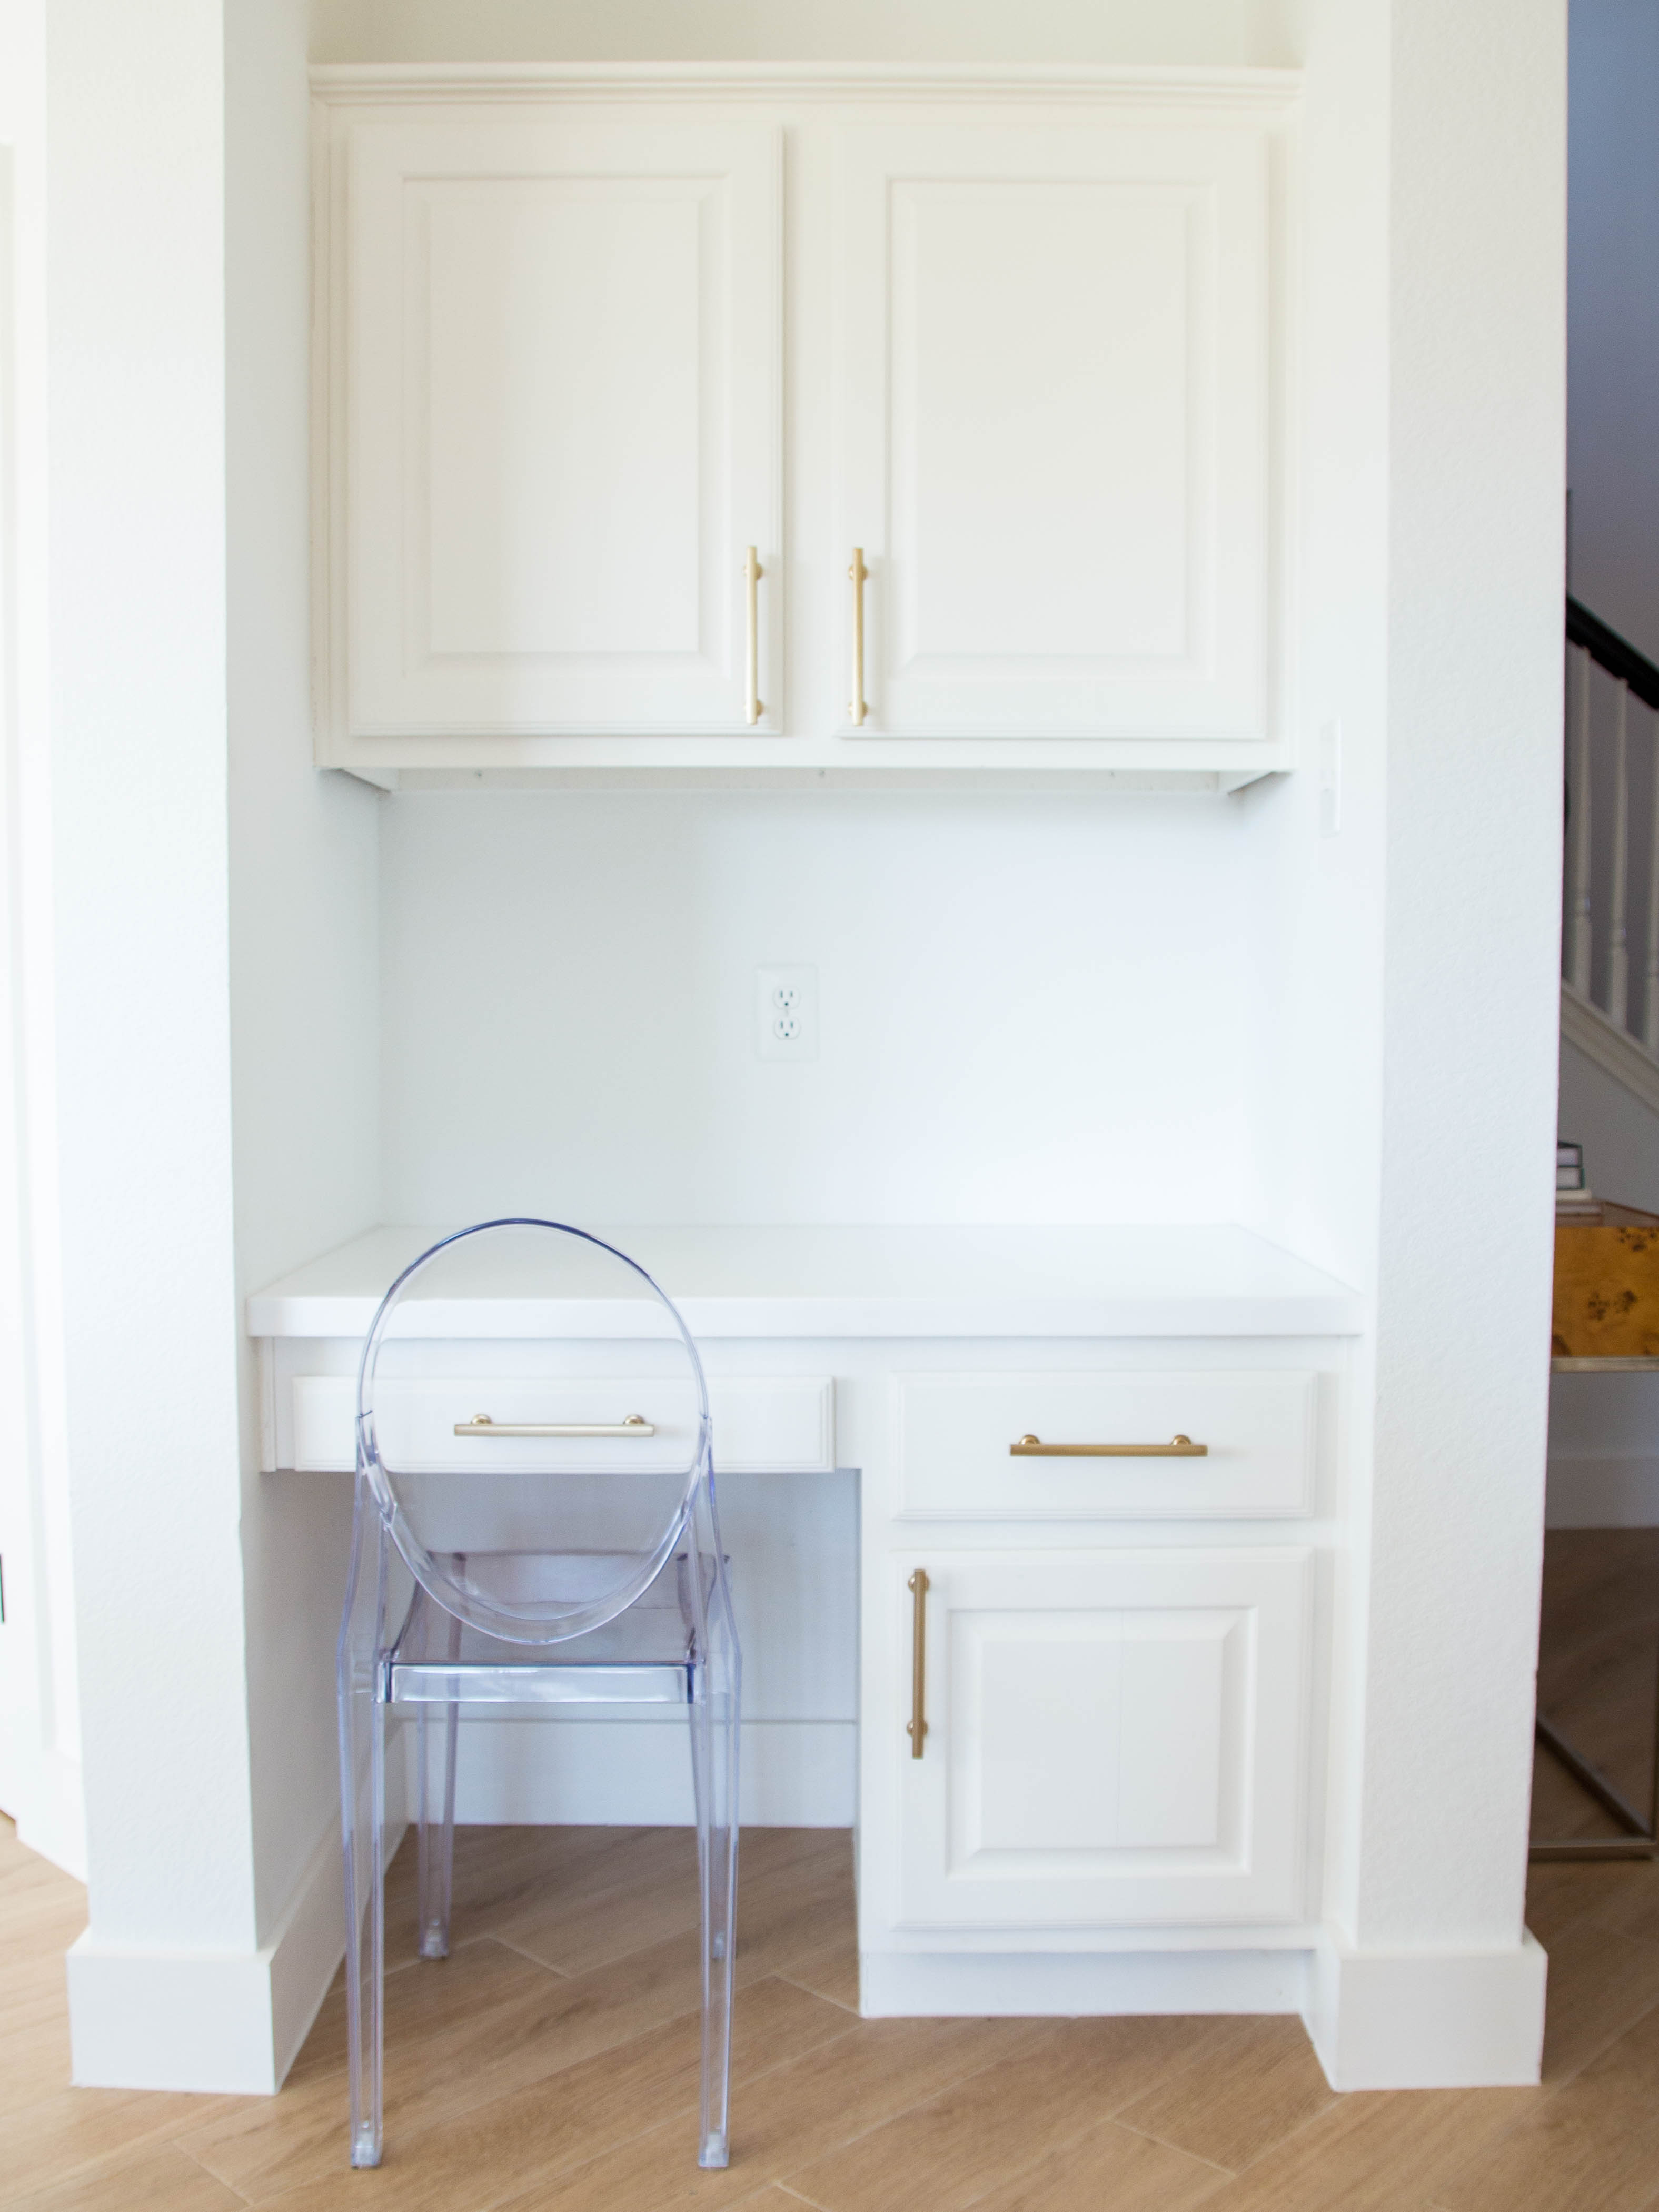 Initially, I Wanted To Turn This Space Into A Little Bar Areau2014wine Fridge  And Allu2014but Then Realized How Useful The Space Could Actually Be, So I Kept  It As ...